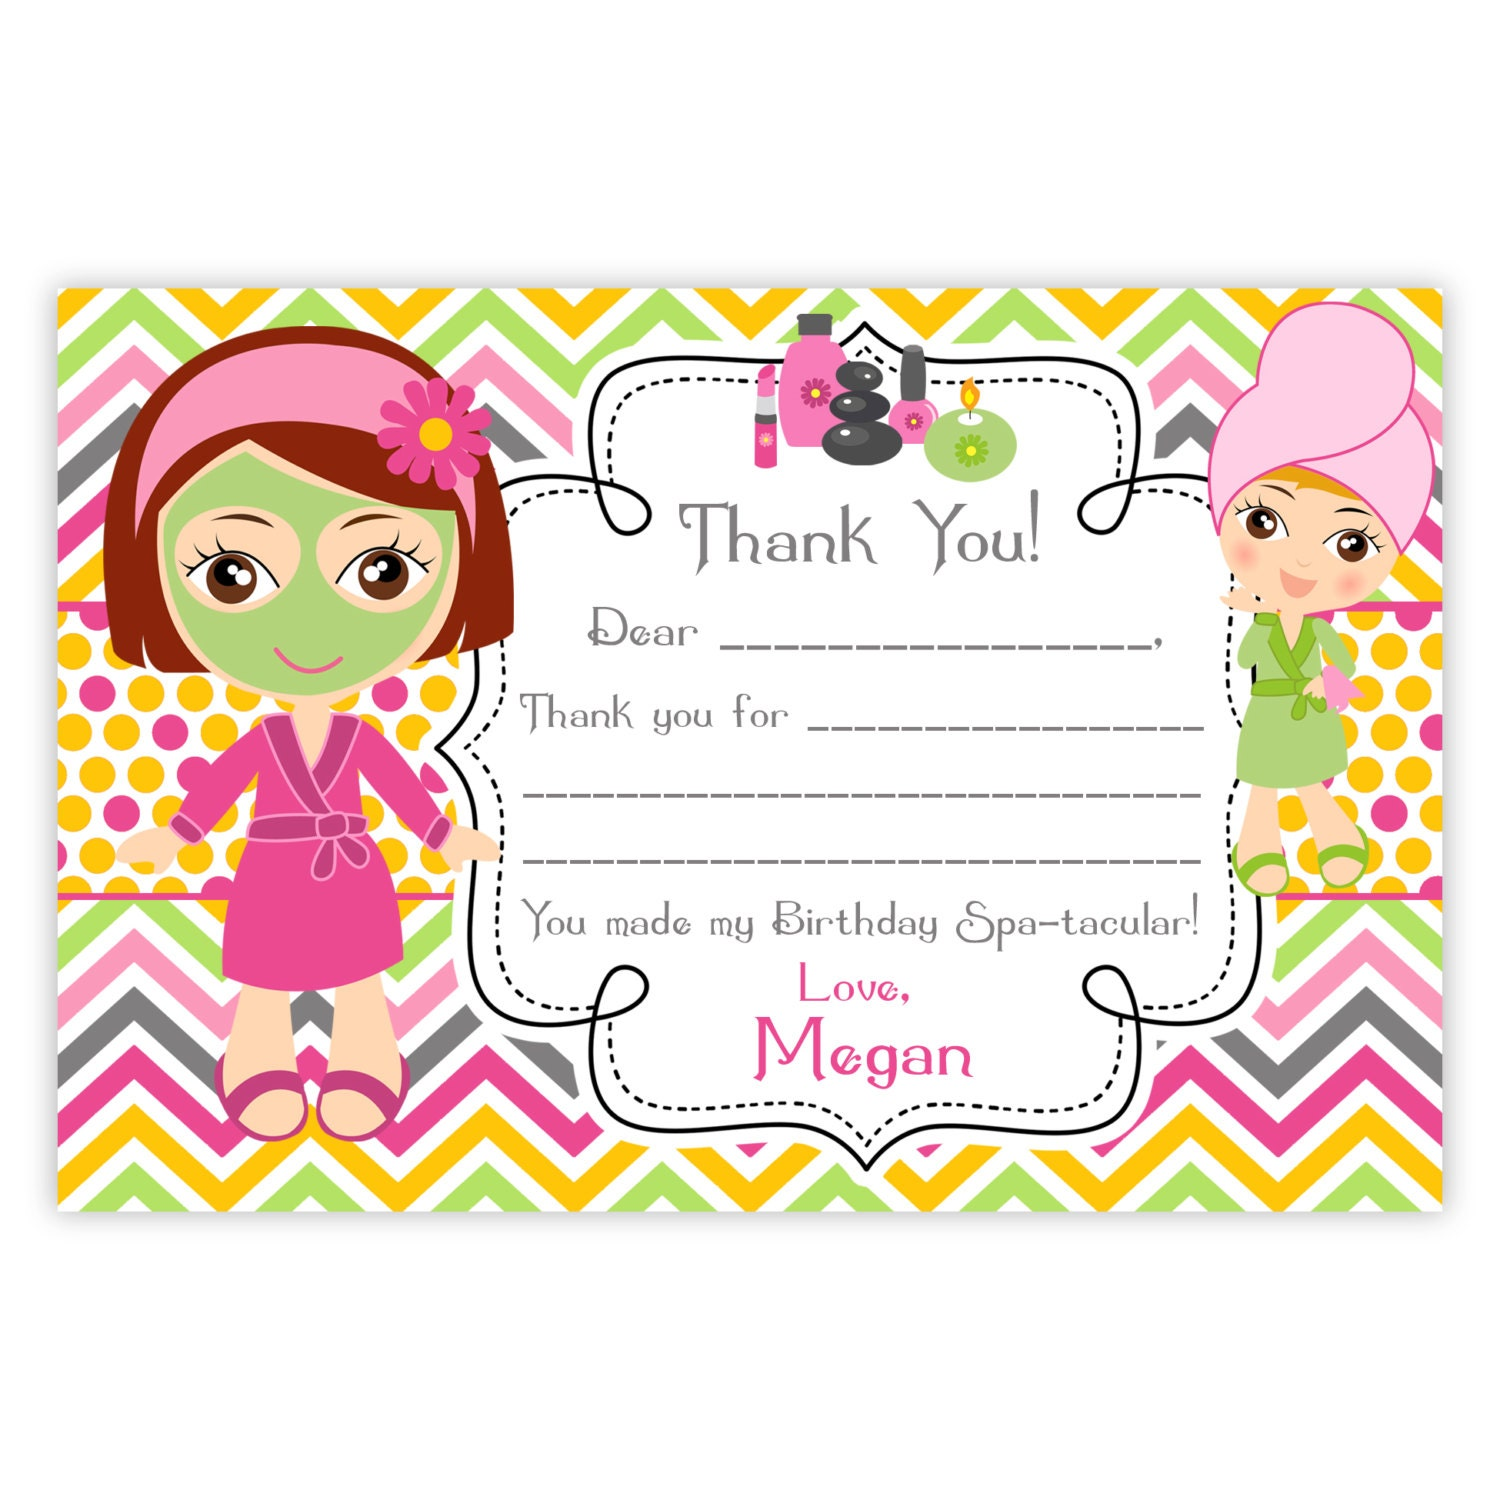 Spa Party Thank You Card Pink Orange Chevron Cute Little